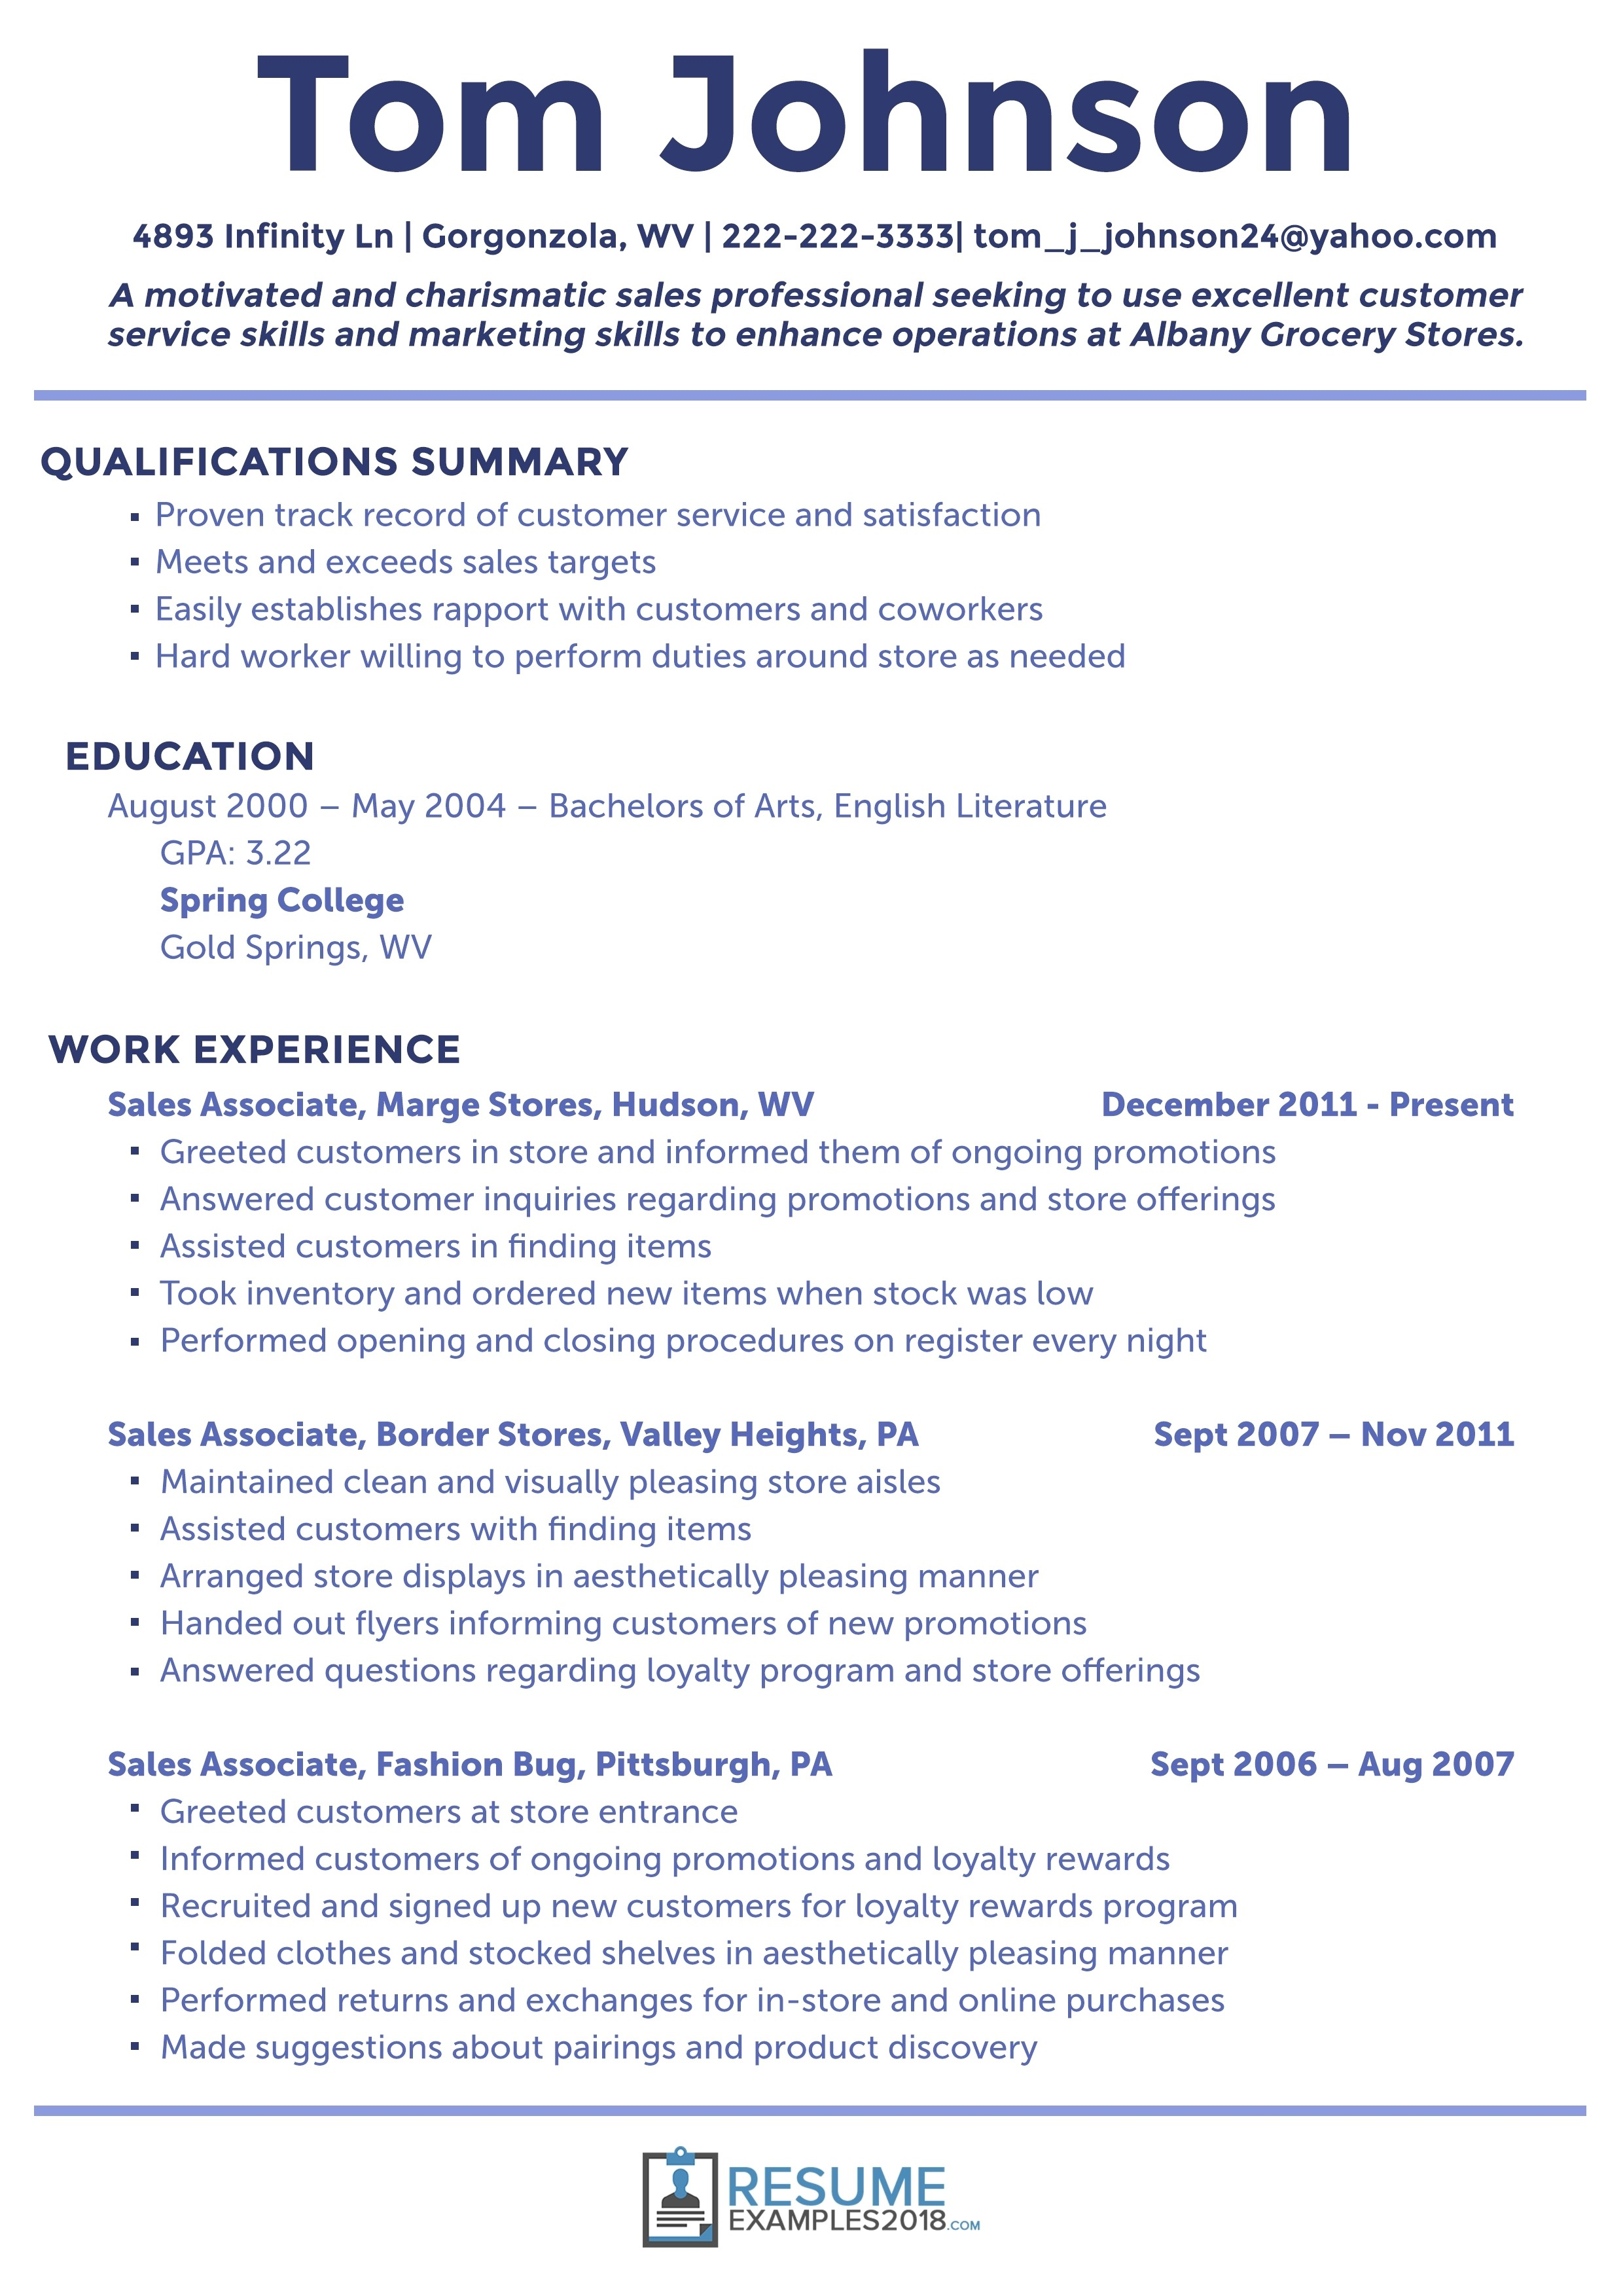 simple resume examples 2018